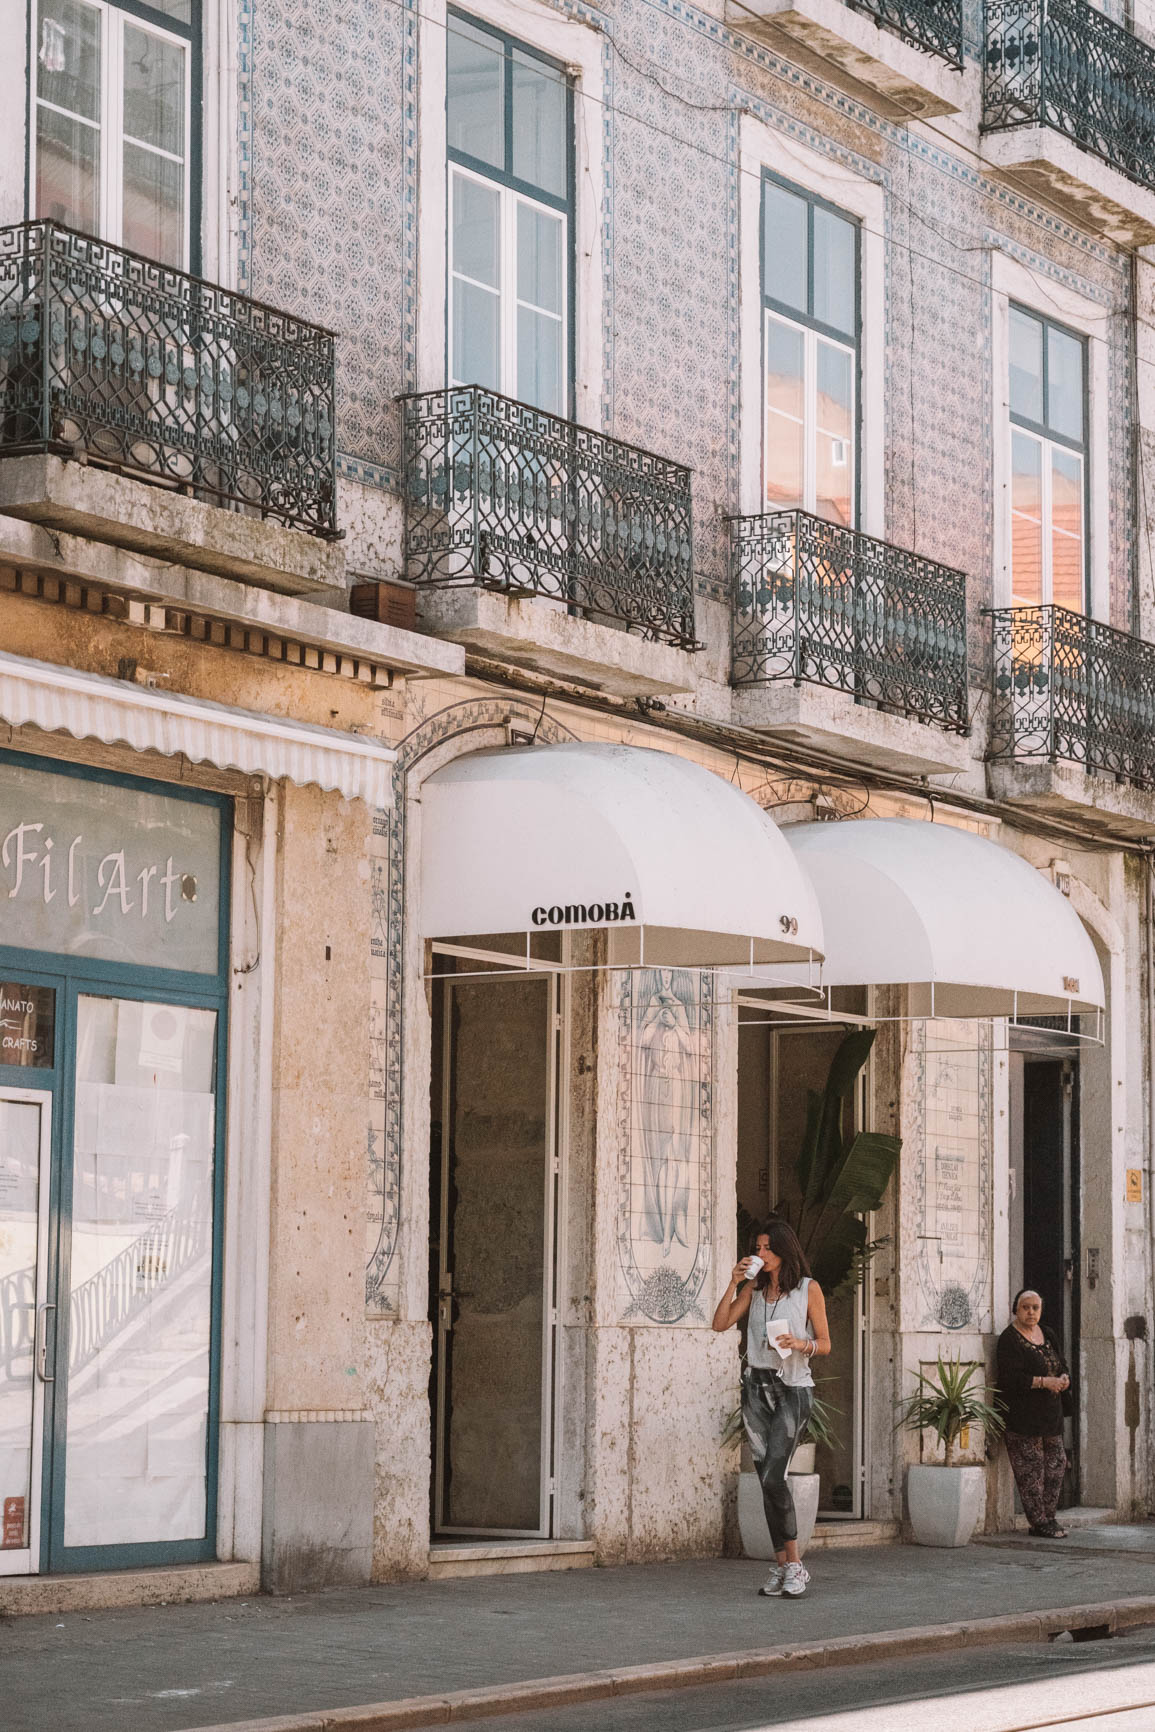 Where to eat and brunch in Lisbon - Trendy coffee shops in Lisbon Portugal - Cafe Janis  #Lisbon #Portugal #CoffeeShops